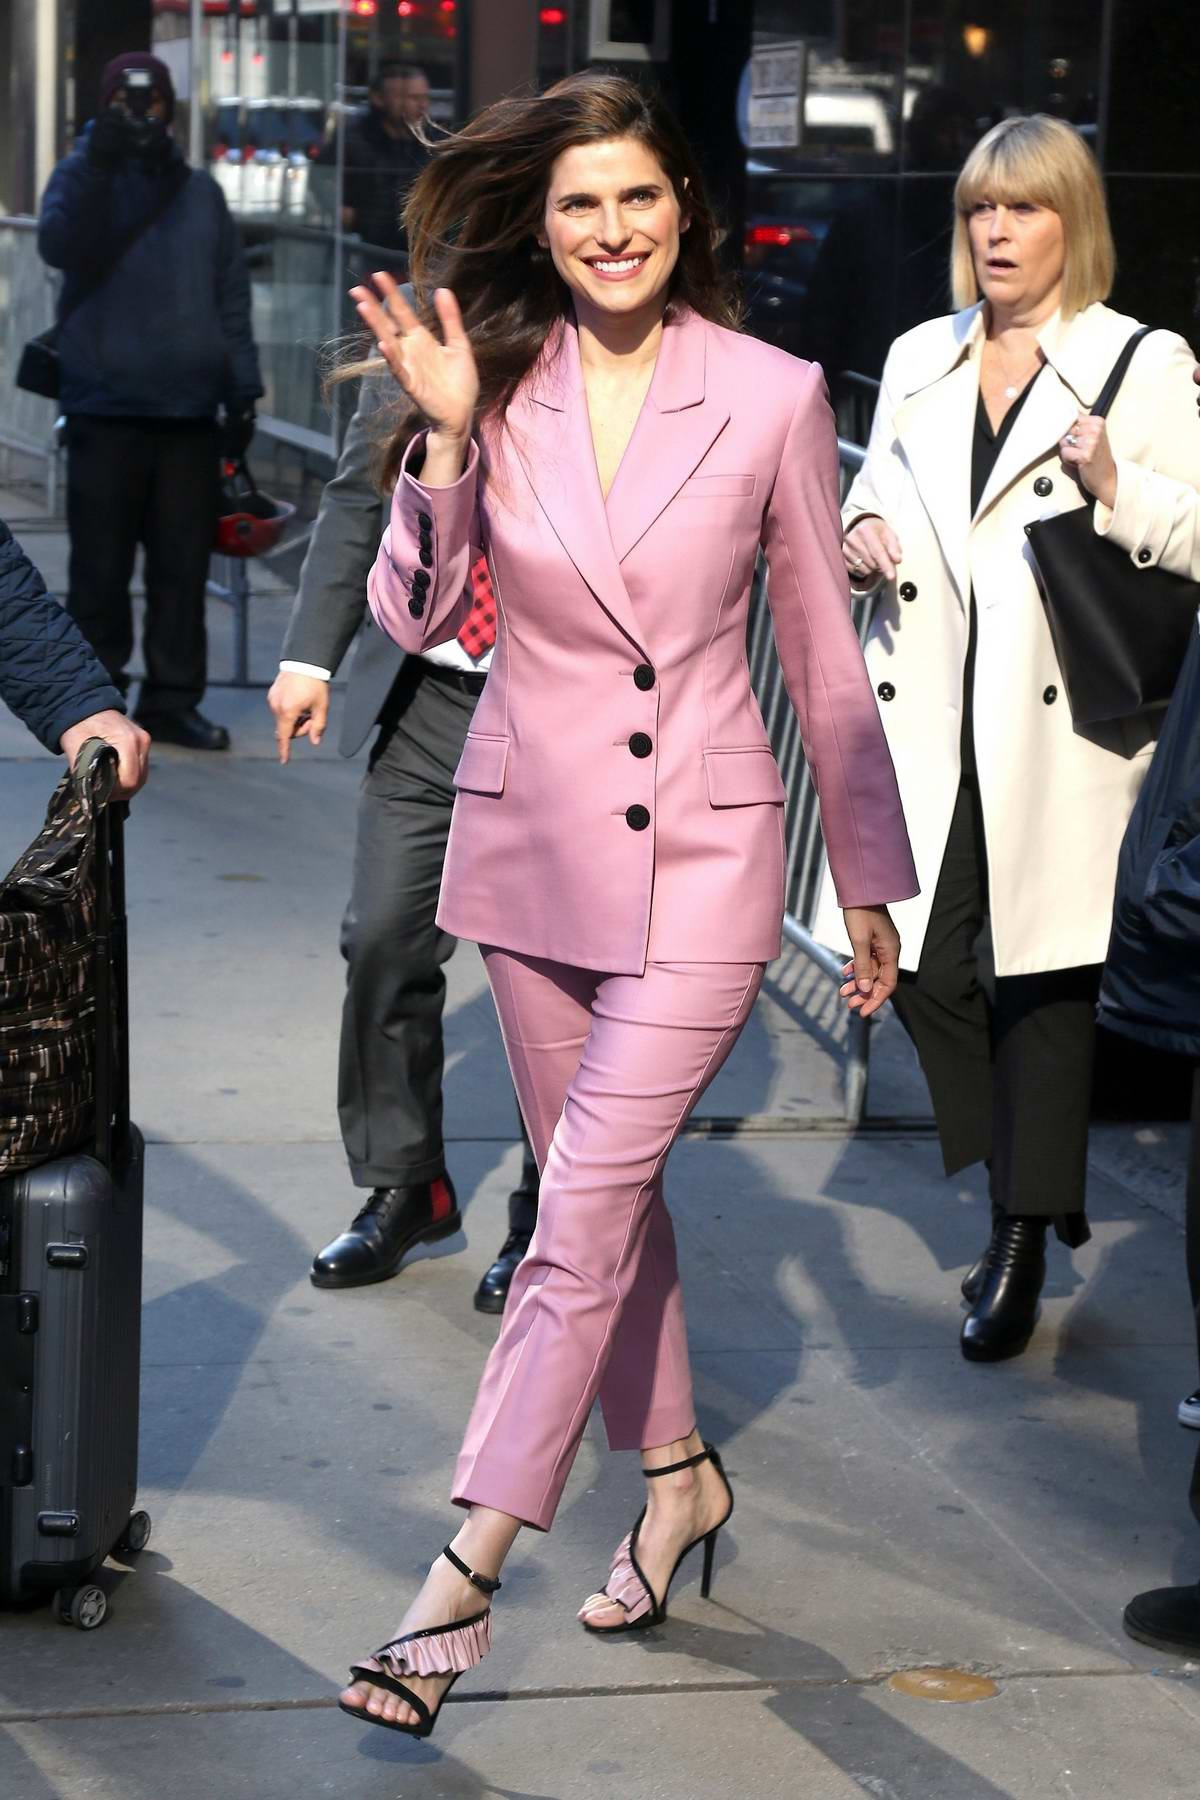 Lake Bell sports a pink pantsuit while visiting at Good Morning America in New York City